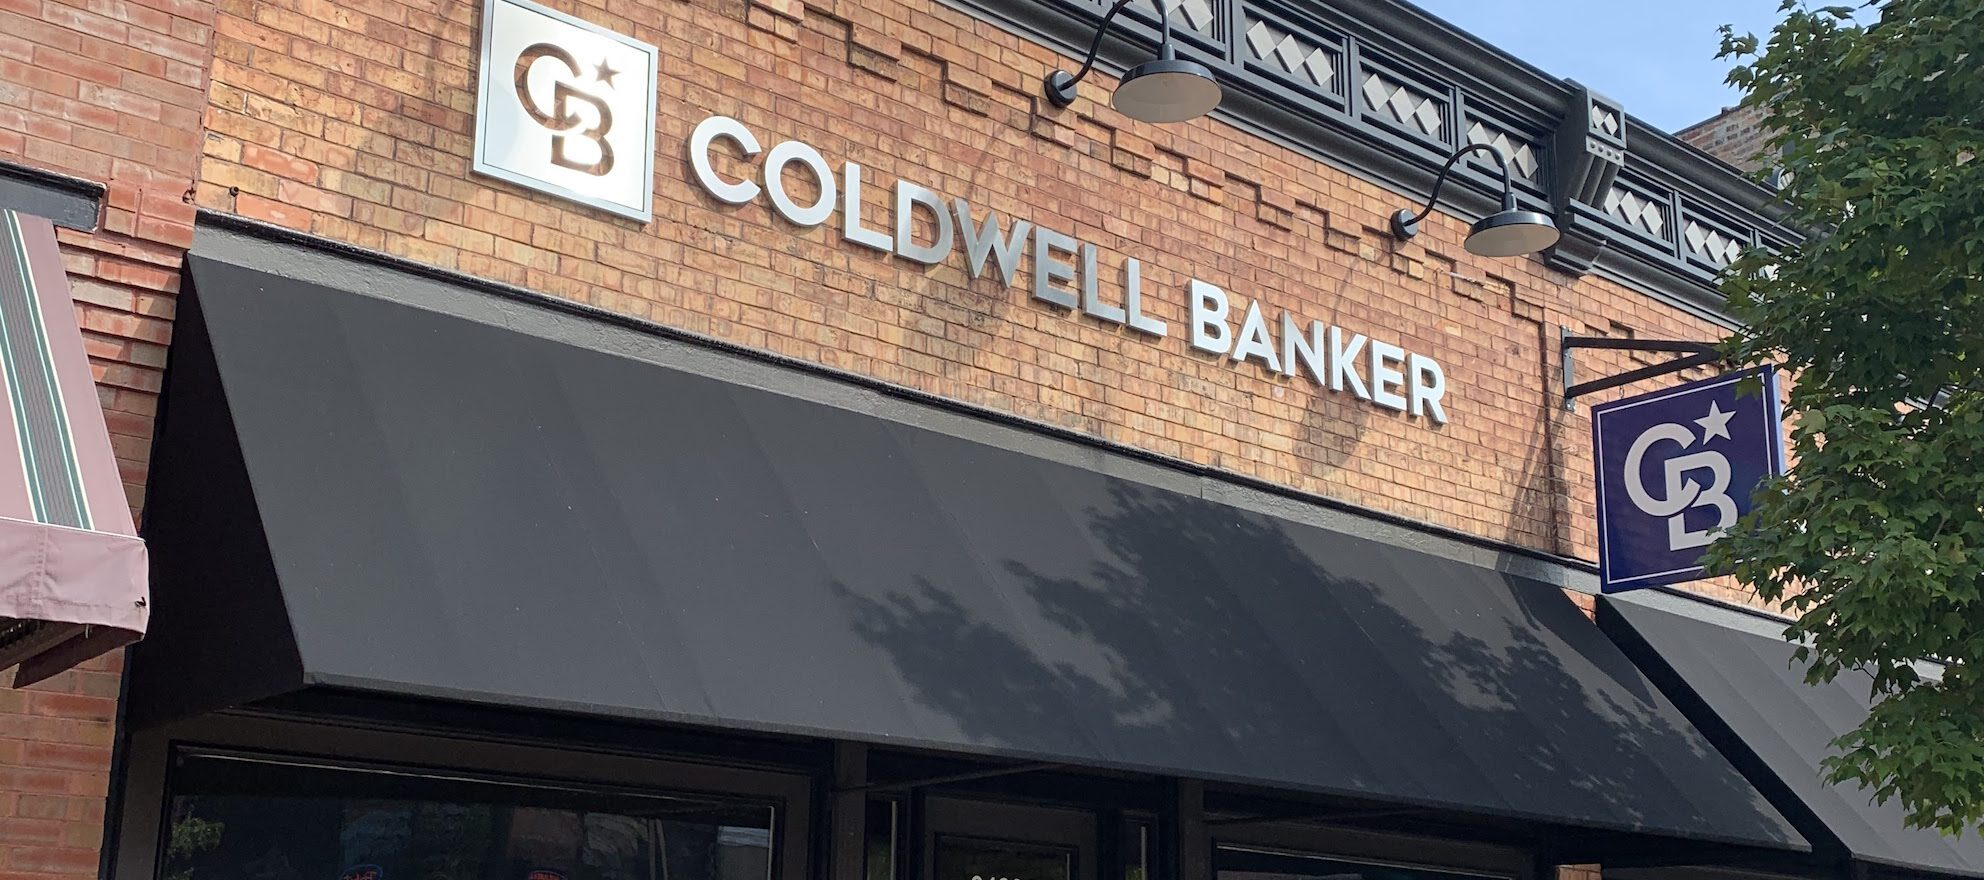 Coldwell Banker CEOs: IBuyers will be a 'small component' of the marketplace